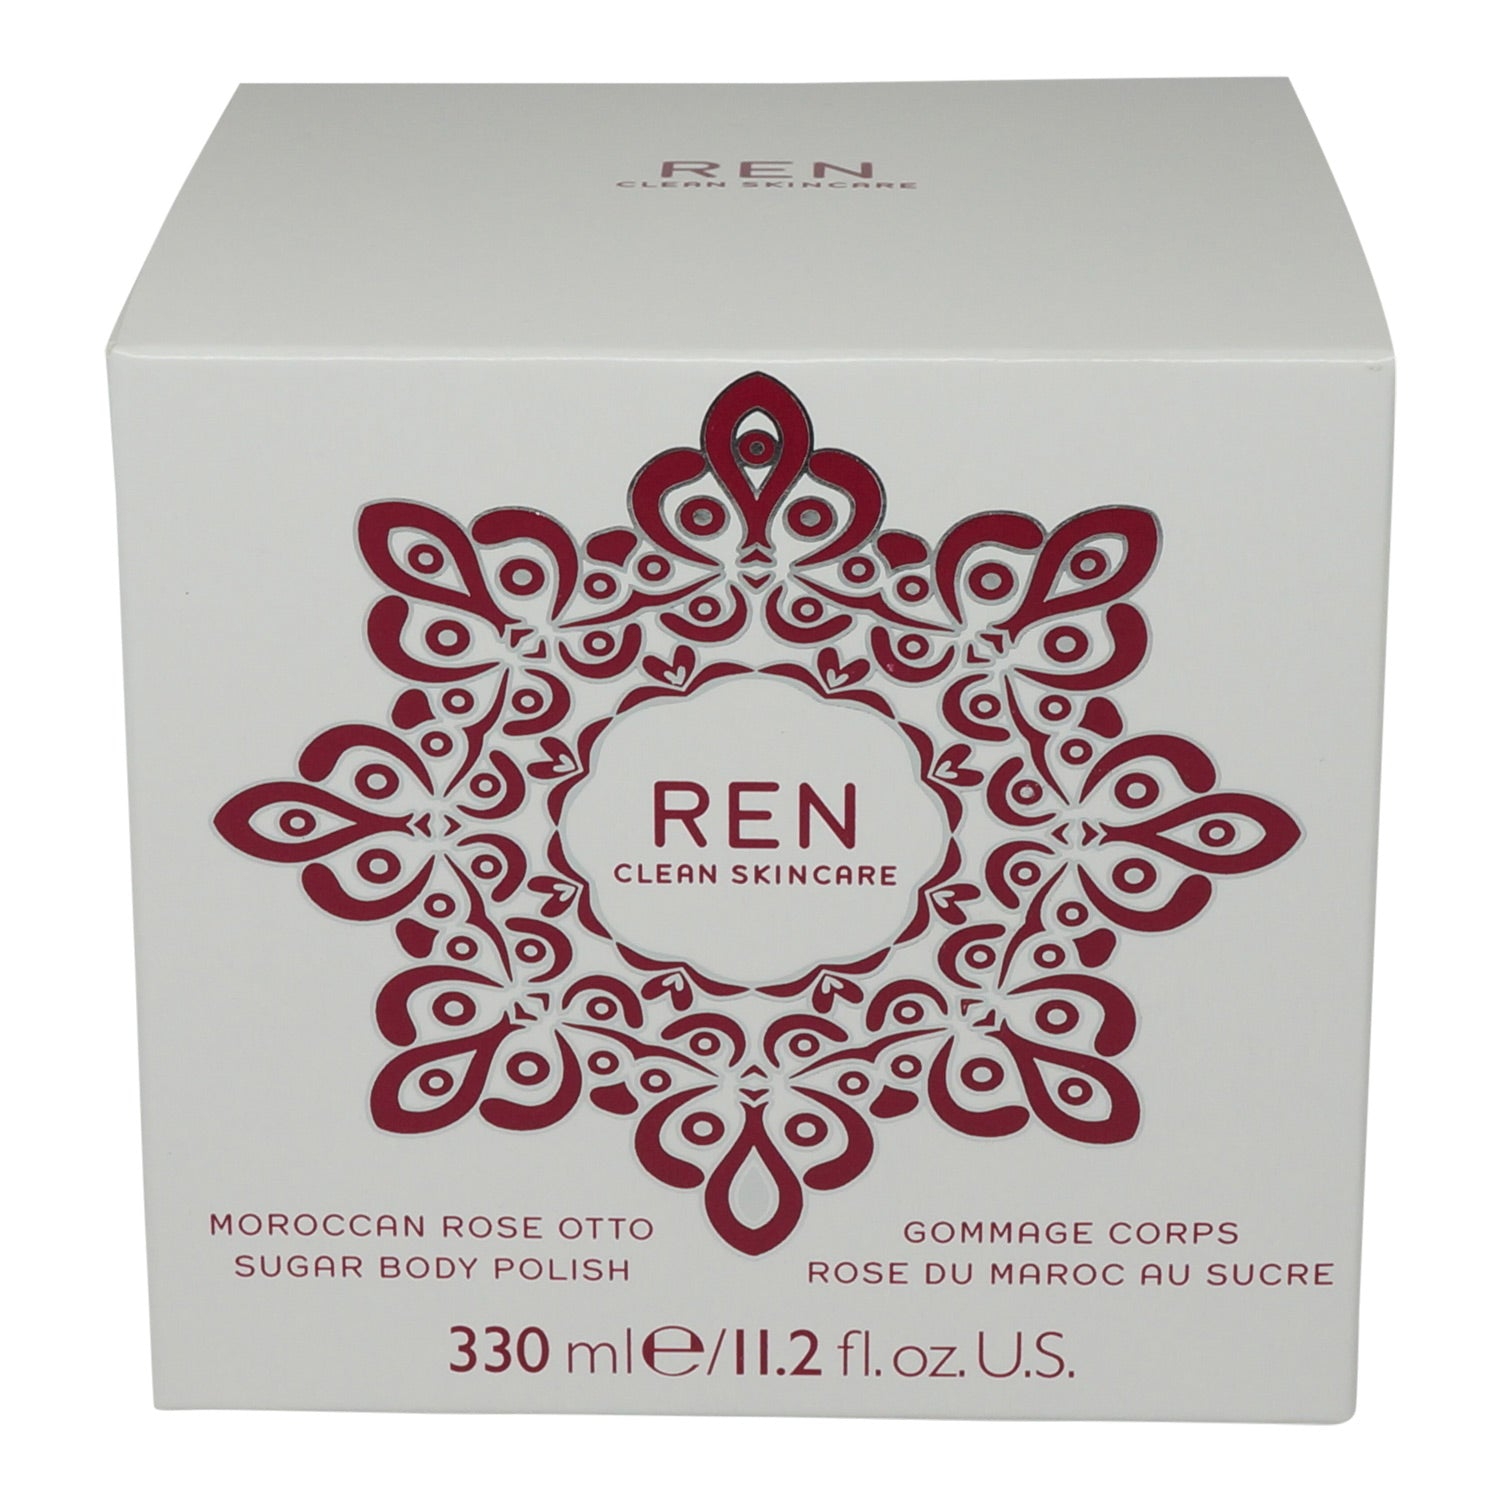 REN ~ MOROCCAN ROSE OTTO SUGAR BODY POLISH